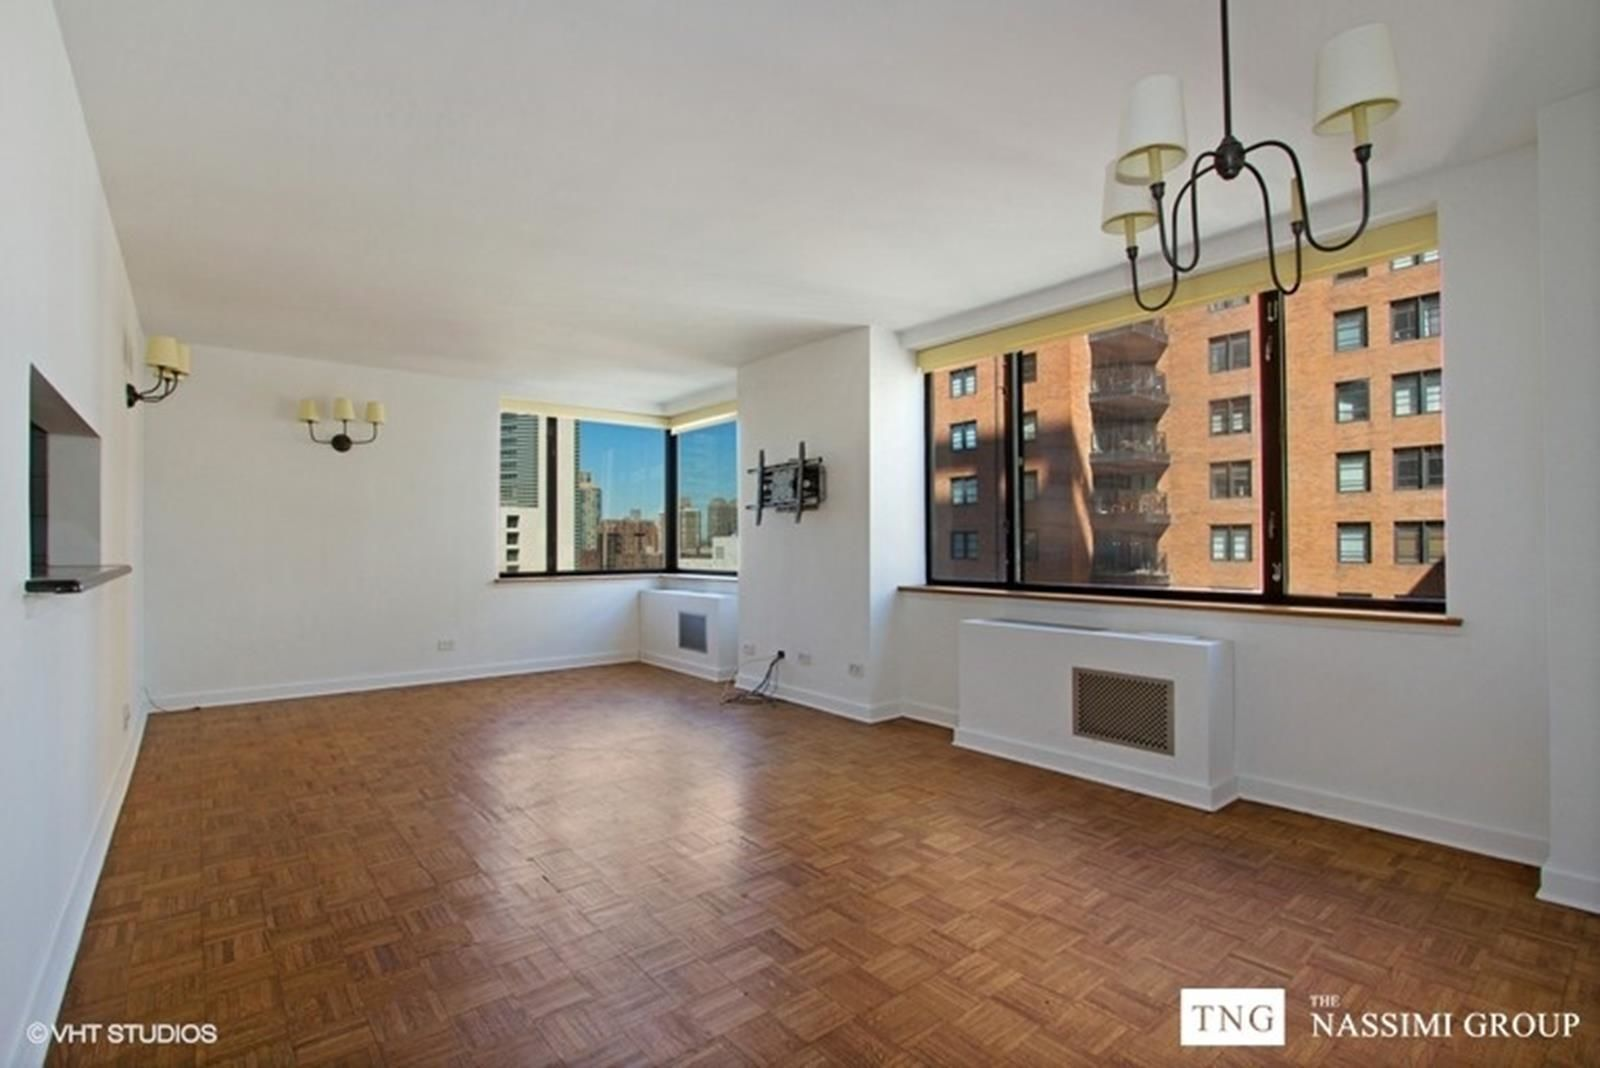 Apartment for sale at 30 West 61st Street, Apt 11-D